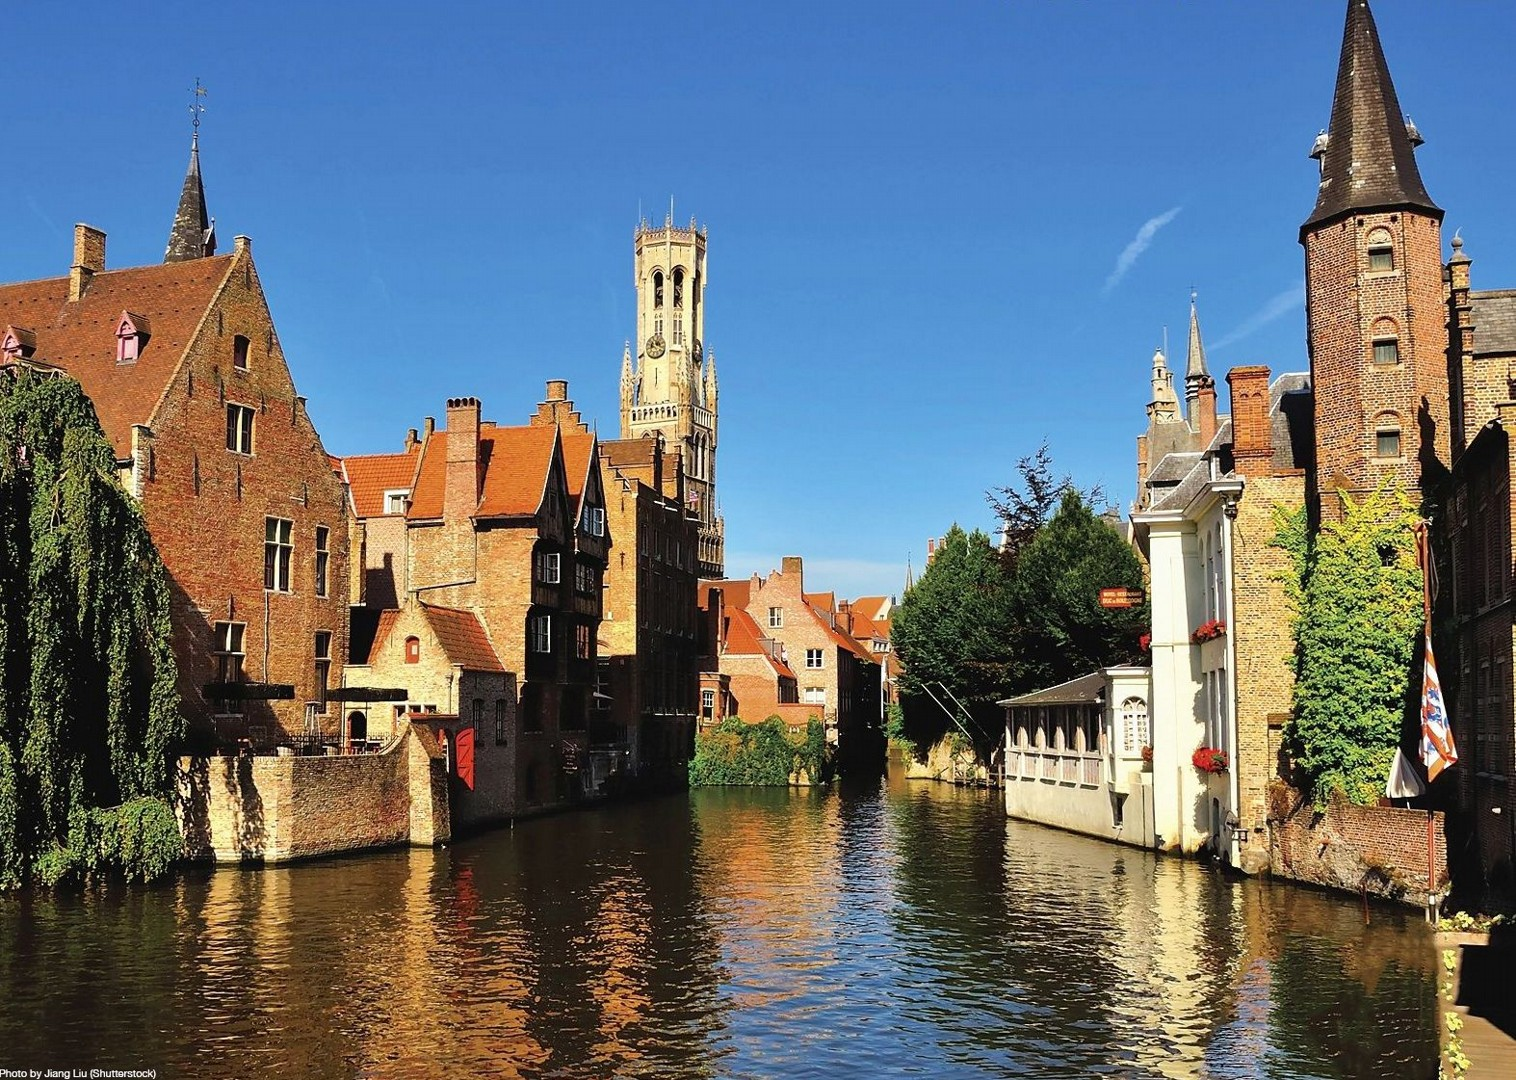 bruges-to-bordeaux-guided-road-cycling-holiday-belgium-and-france.jpg - Belgium and France - Bruges to Bordeaux - Guided Road Cycling Holiday - Road Cycling